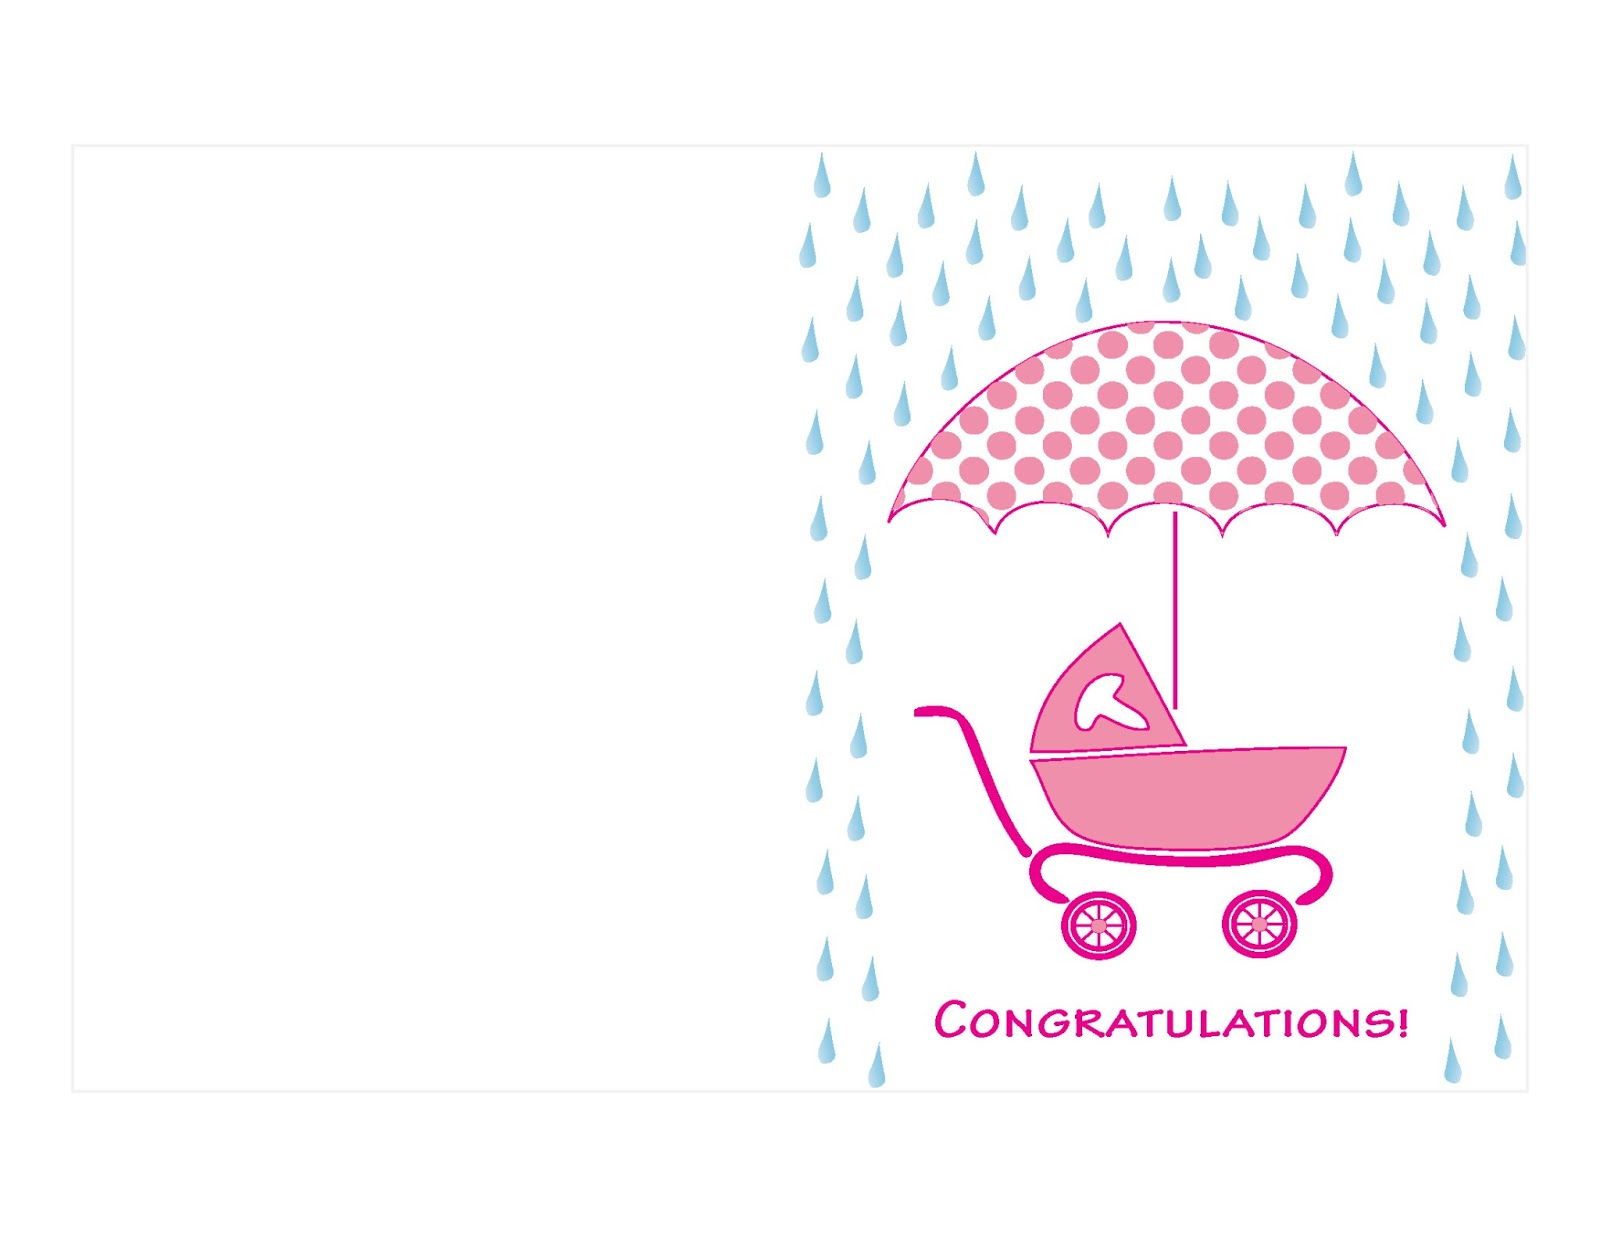 Free Printable Baby Cards My Free Printable Towel Rack For Glass - Congratulations On Your Baby Girl Free Printable Cards